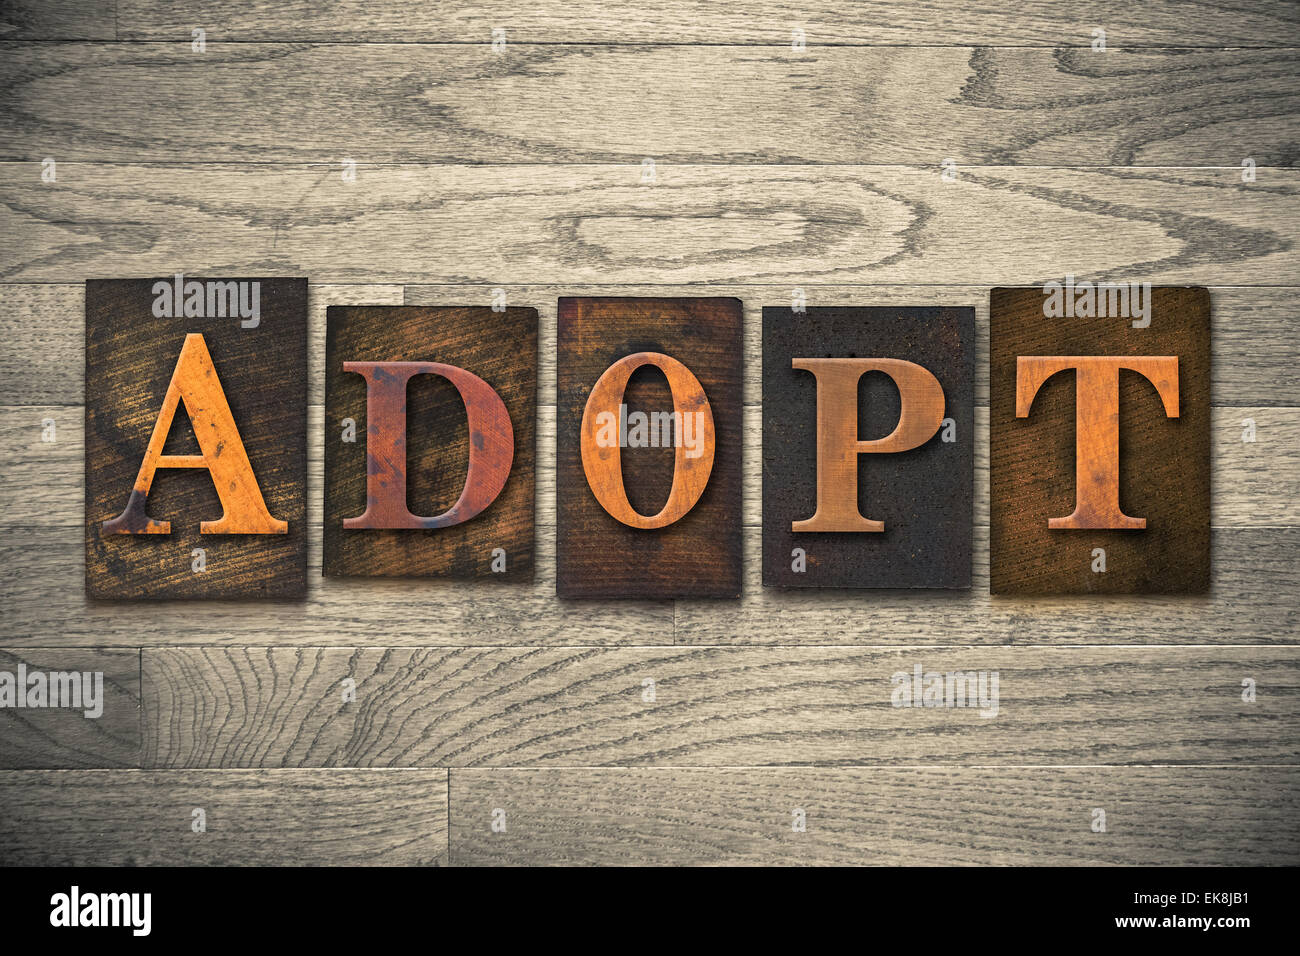 "The word ""ADOPT"" theme written in vintage, ink stained, wooden letterpress type on a wood grained background."" theme Stock Photo"